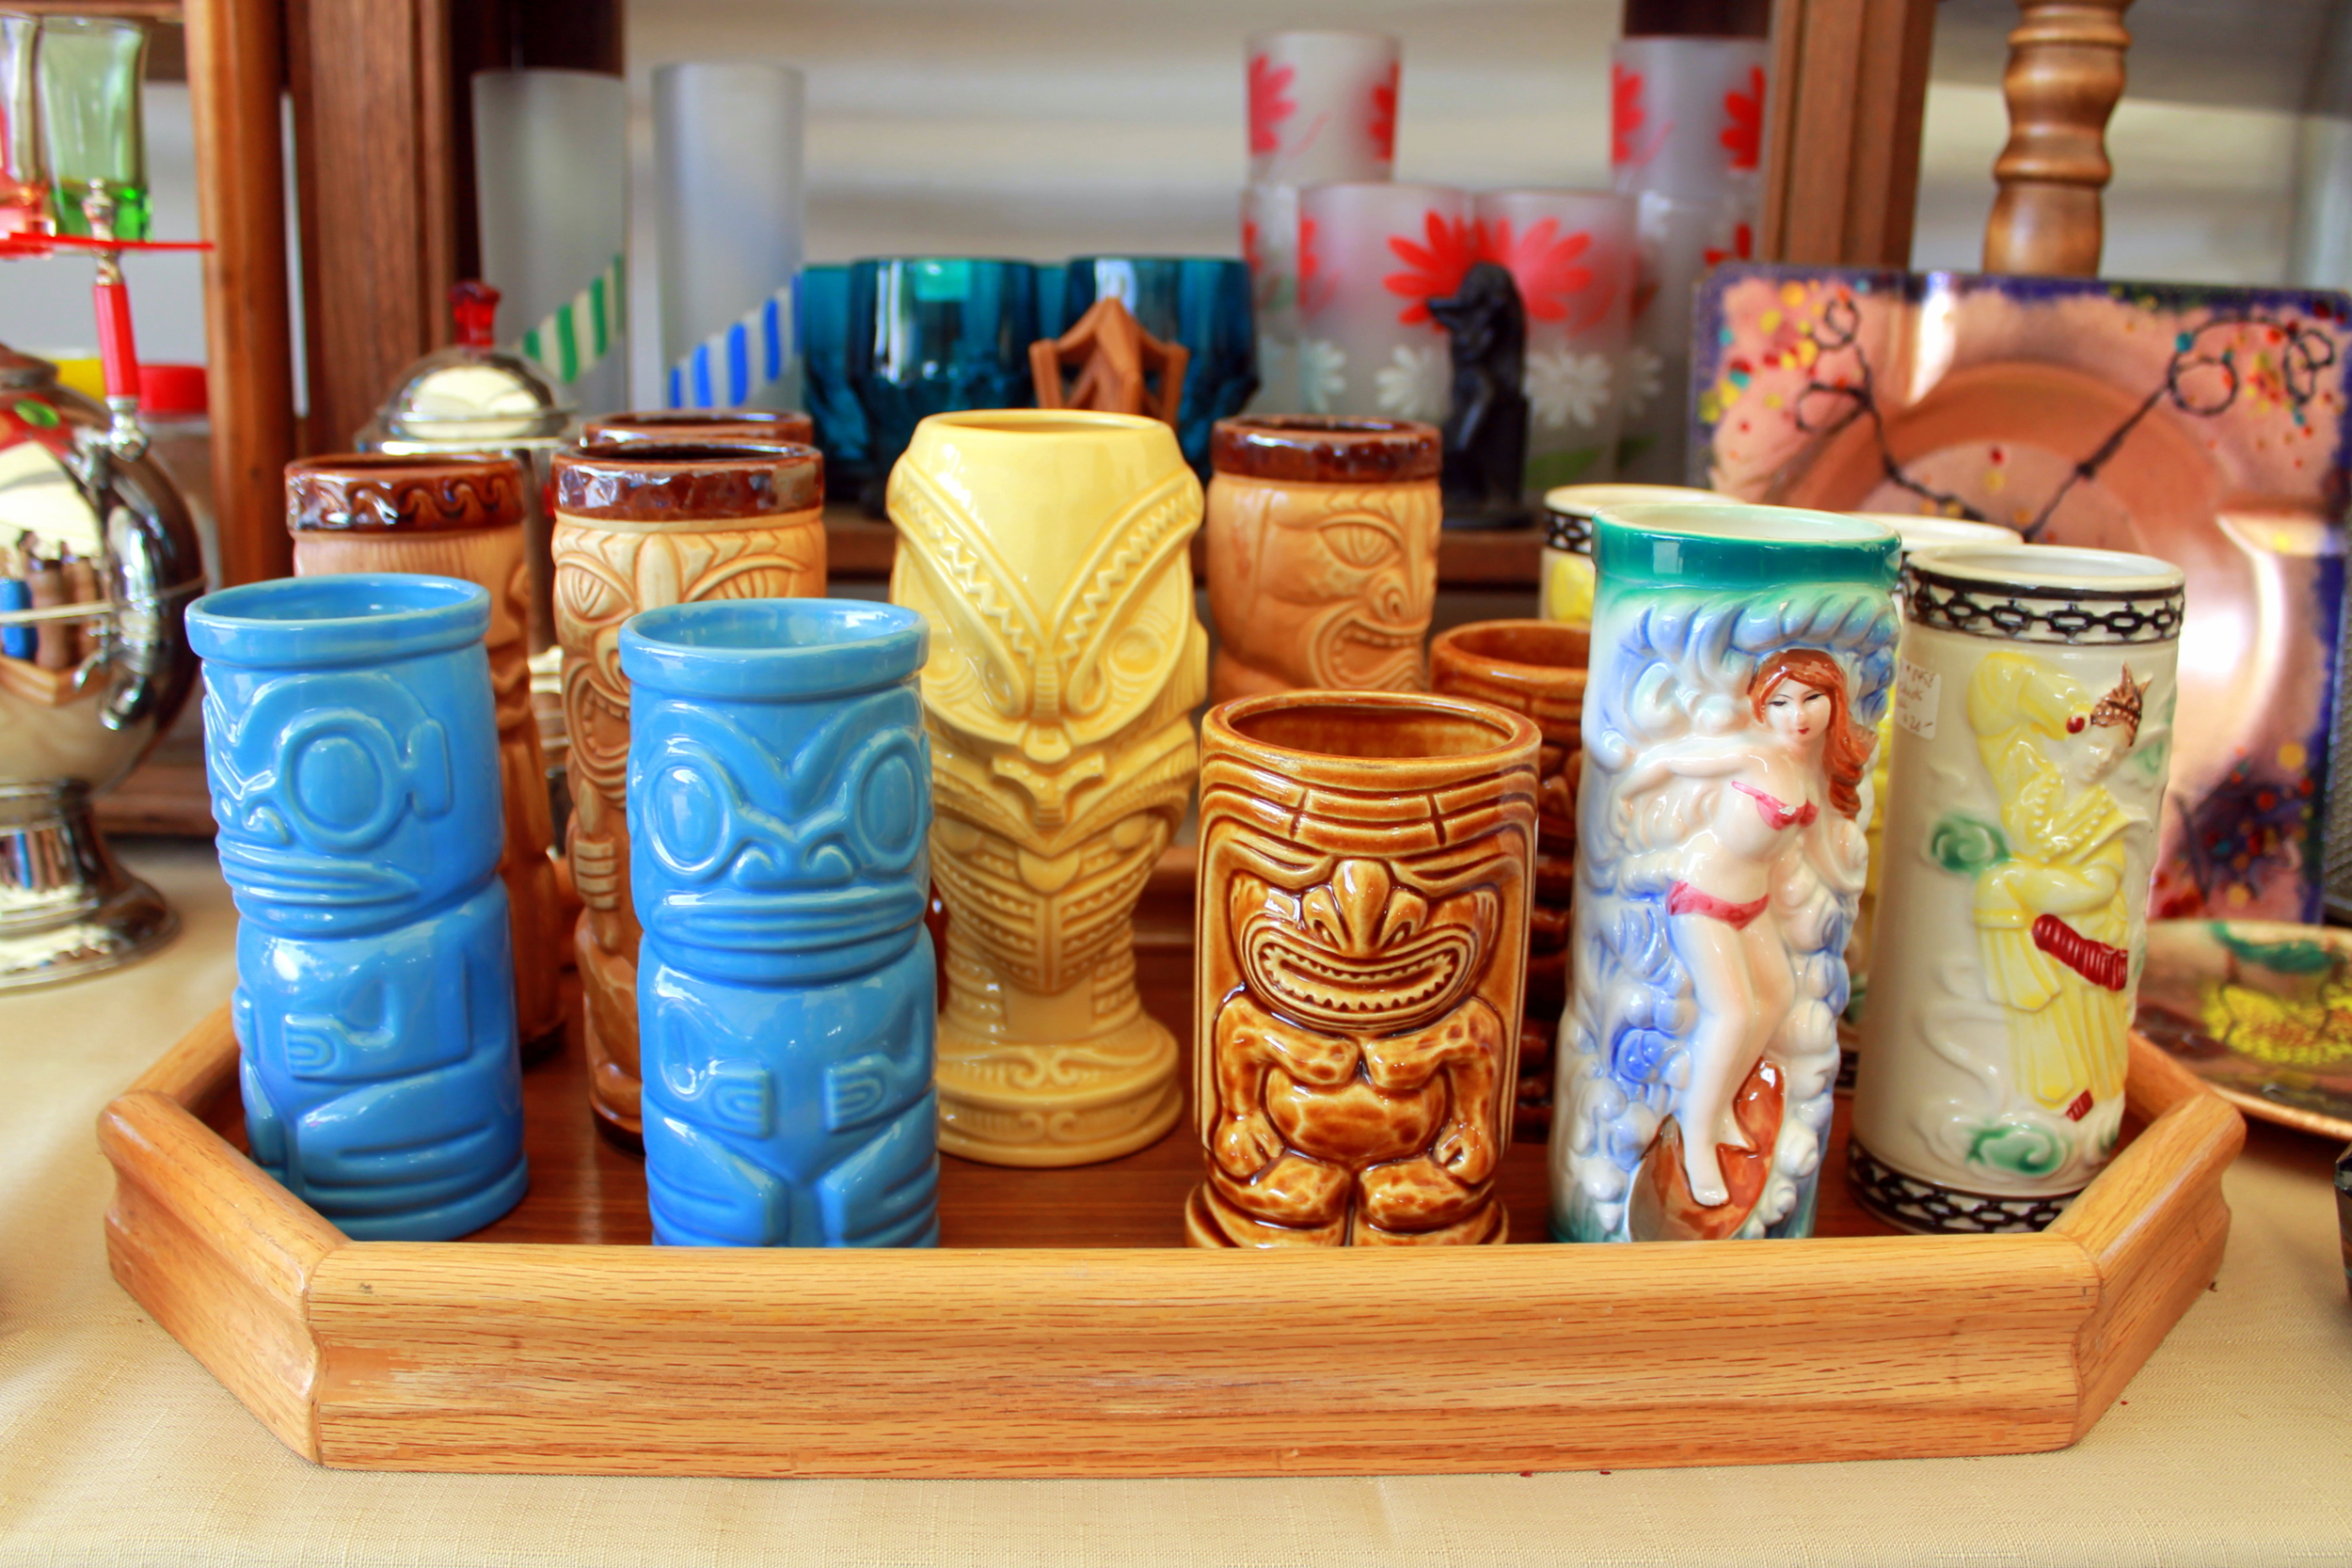 Flea markets offer the unusual. These tiki cocktail glasses add whimsy to any bar. What fun to use these at your next party!